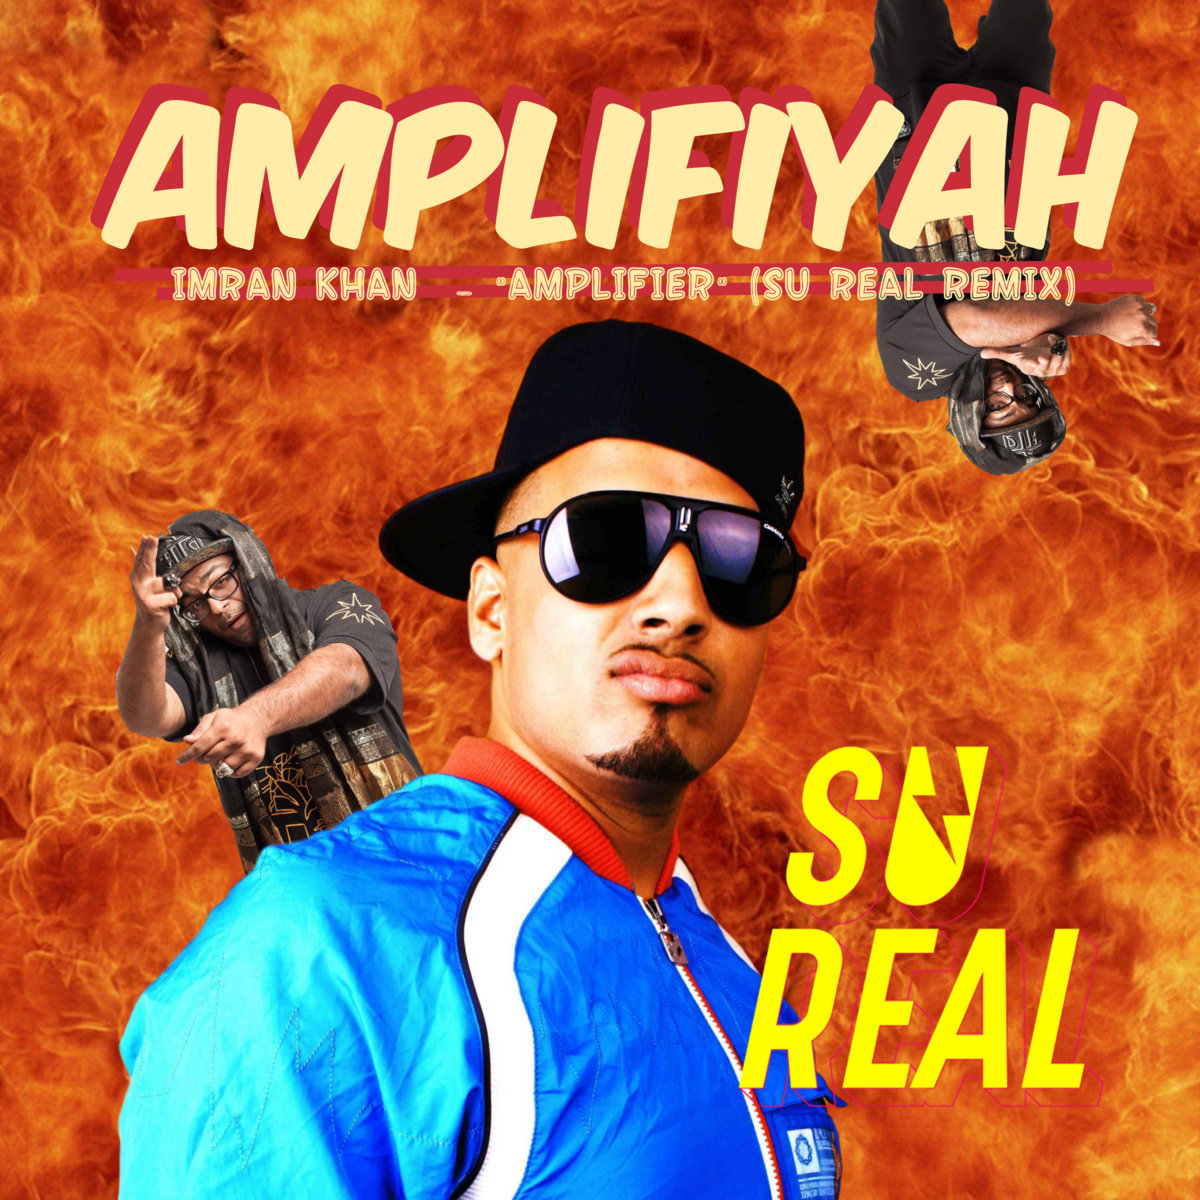 amplifier imran khan dj remix mp3 download